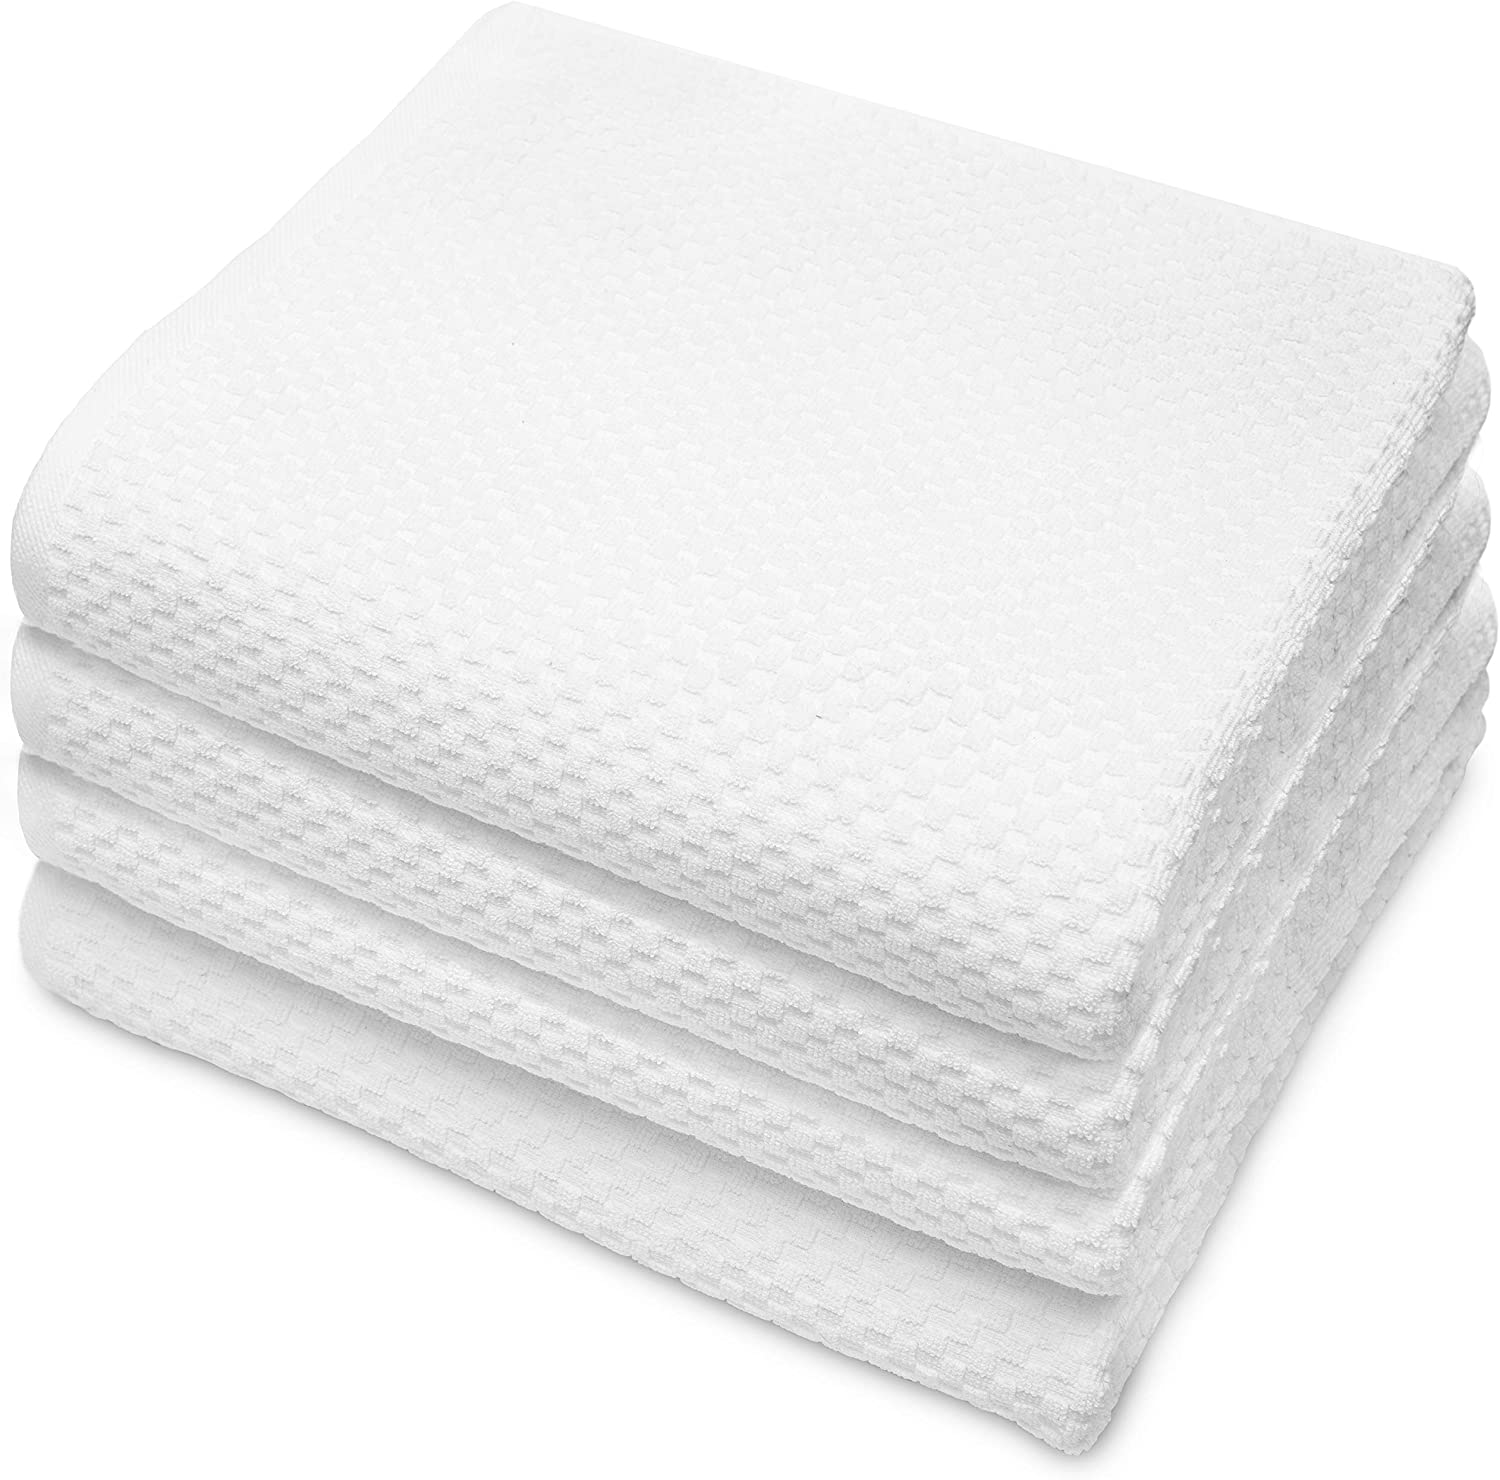 COTTON CRAFT - 4 Pack Euro Spa Waffle Weave Oversized Bath Towels 30x56 - White - 100% Pure Ringspun Combed Cotton - True Luxury Inspired by The Finest European Spas and Resorts